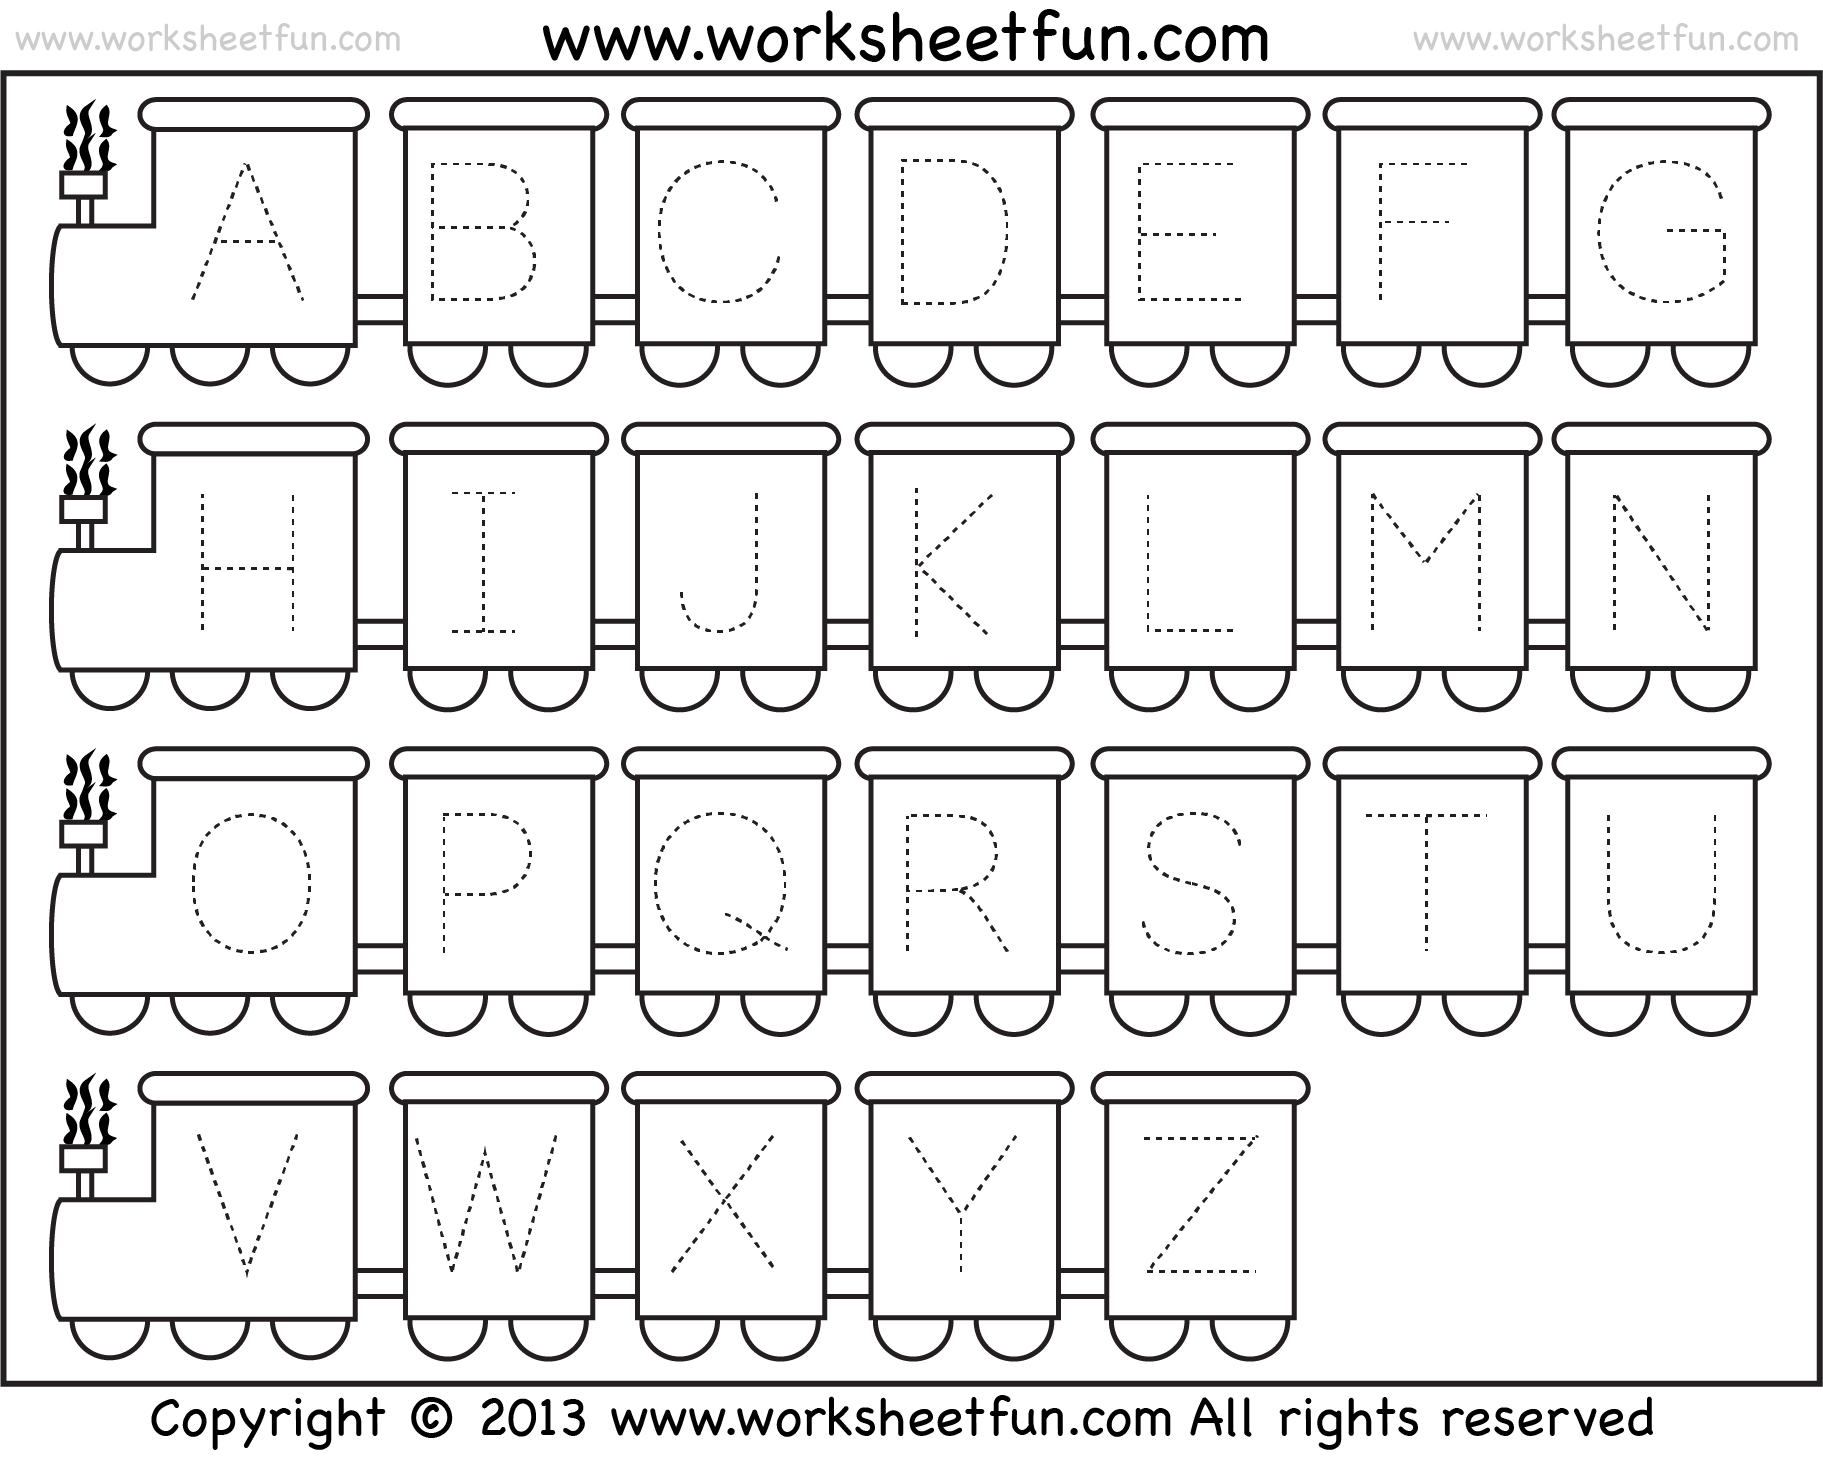 Letter Tracing Worksheet Train Theme FREE Printable Worksheets – Letter a Worksheets for Preschool